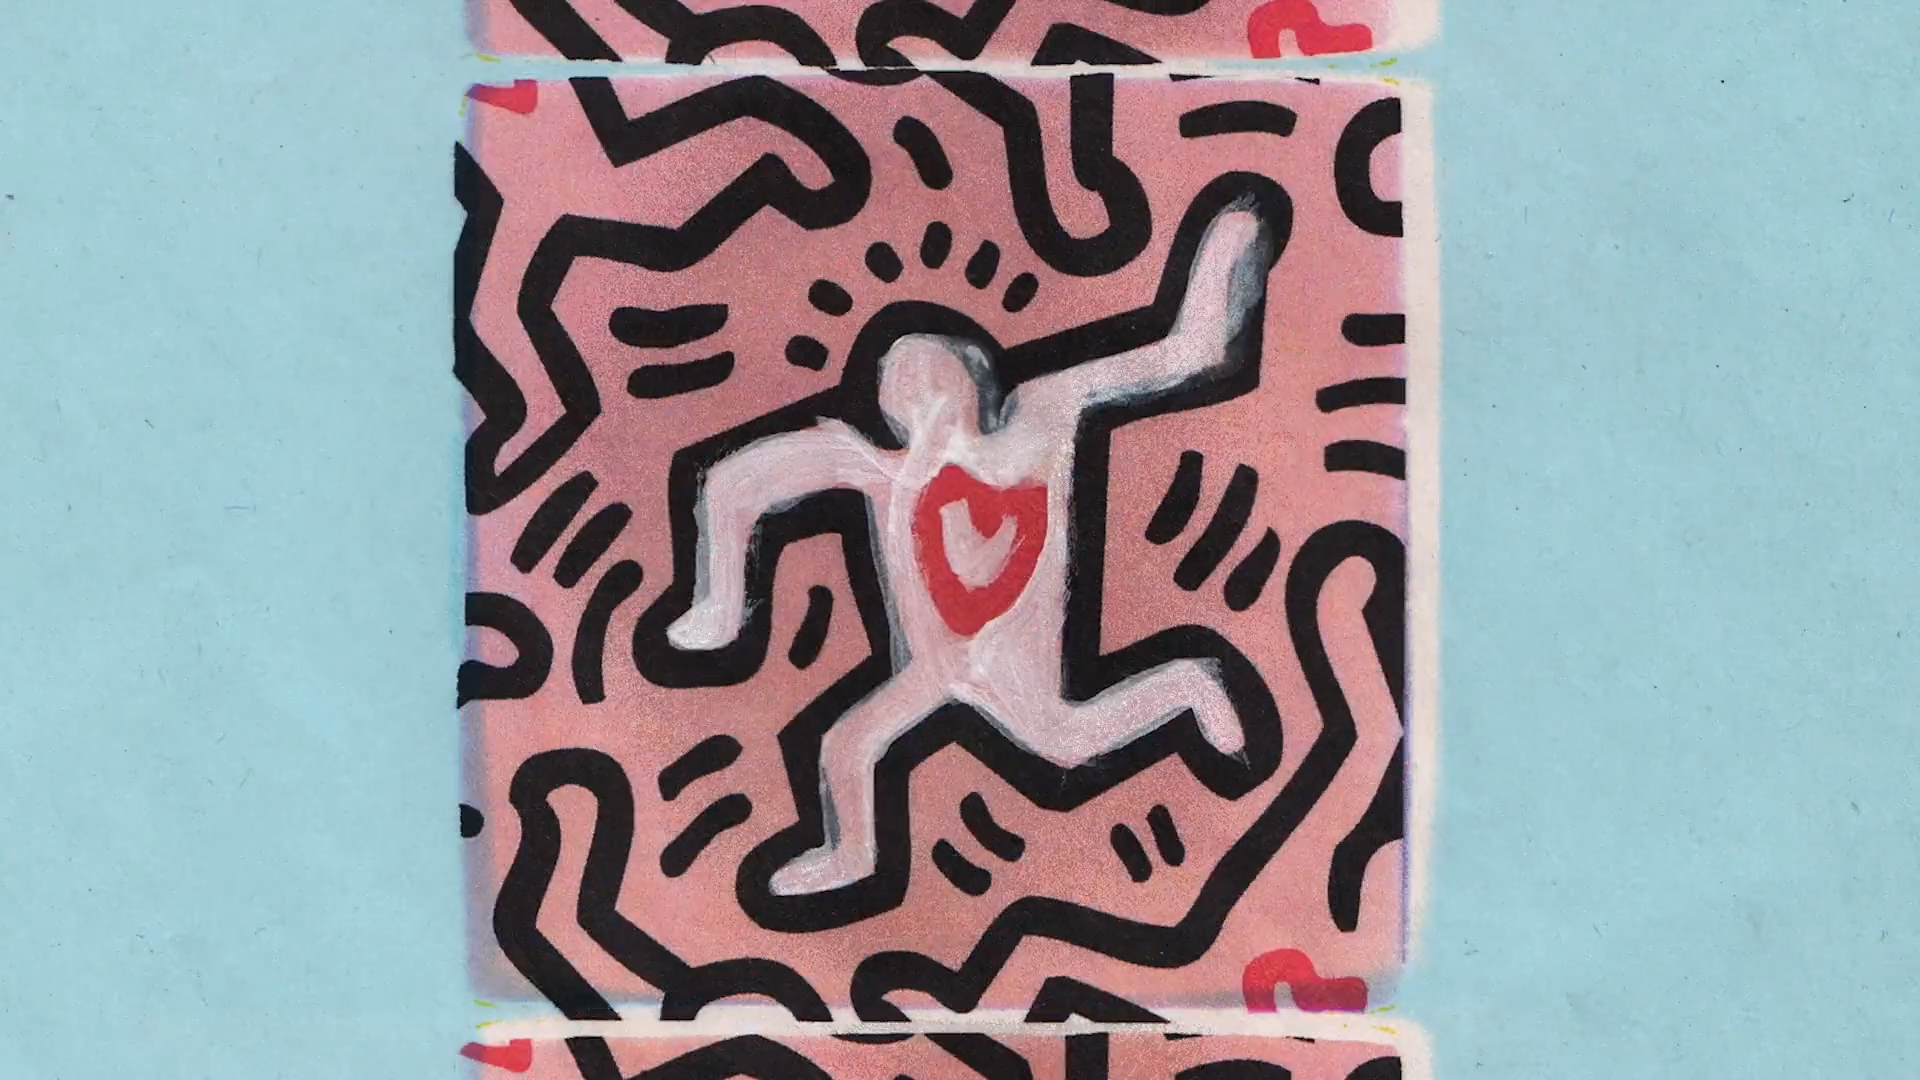 Adobe x Keith Haring _ Creativity For All010